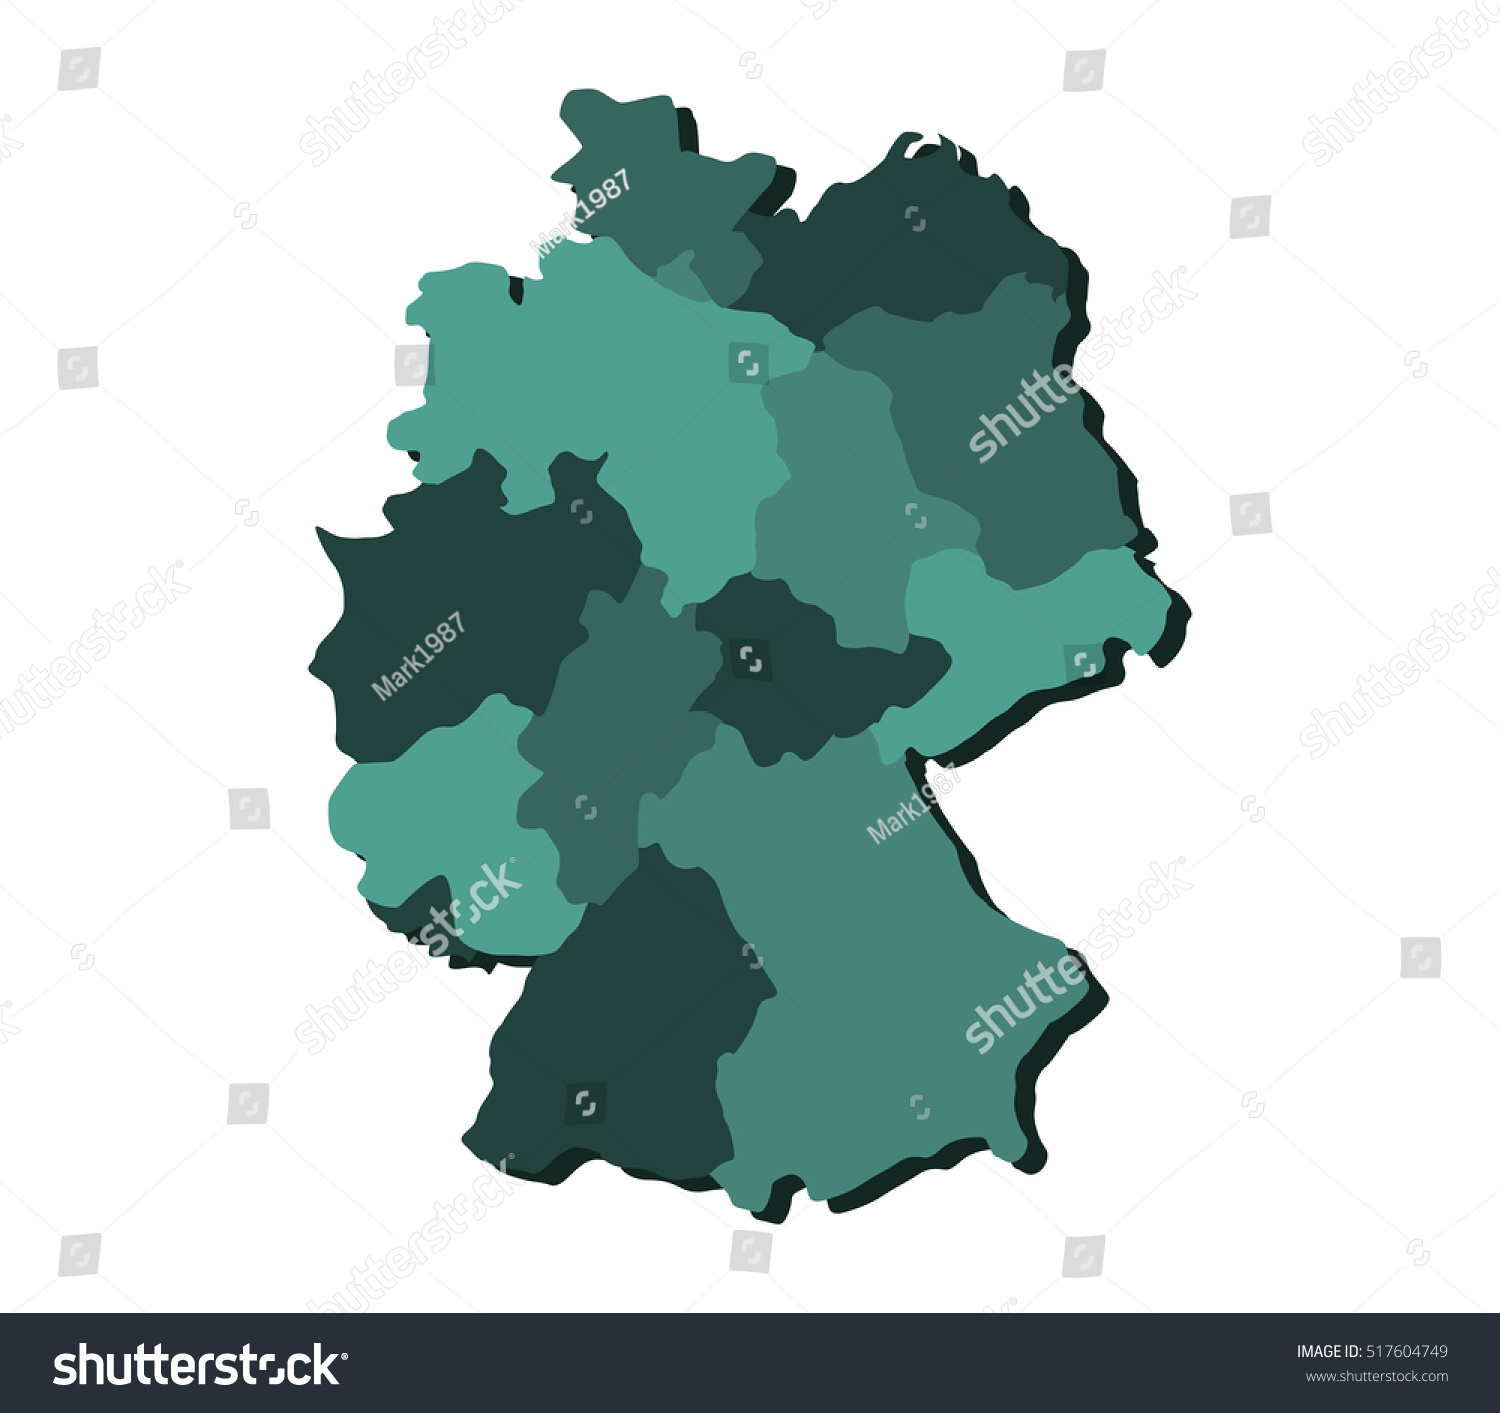 Map Of Germany With Regions.Map Germany Regions Stock Illustration 517604749 Shutterstock